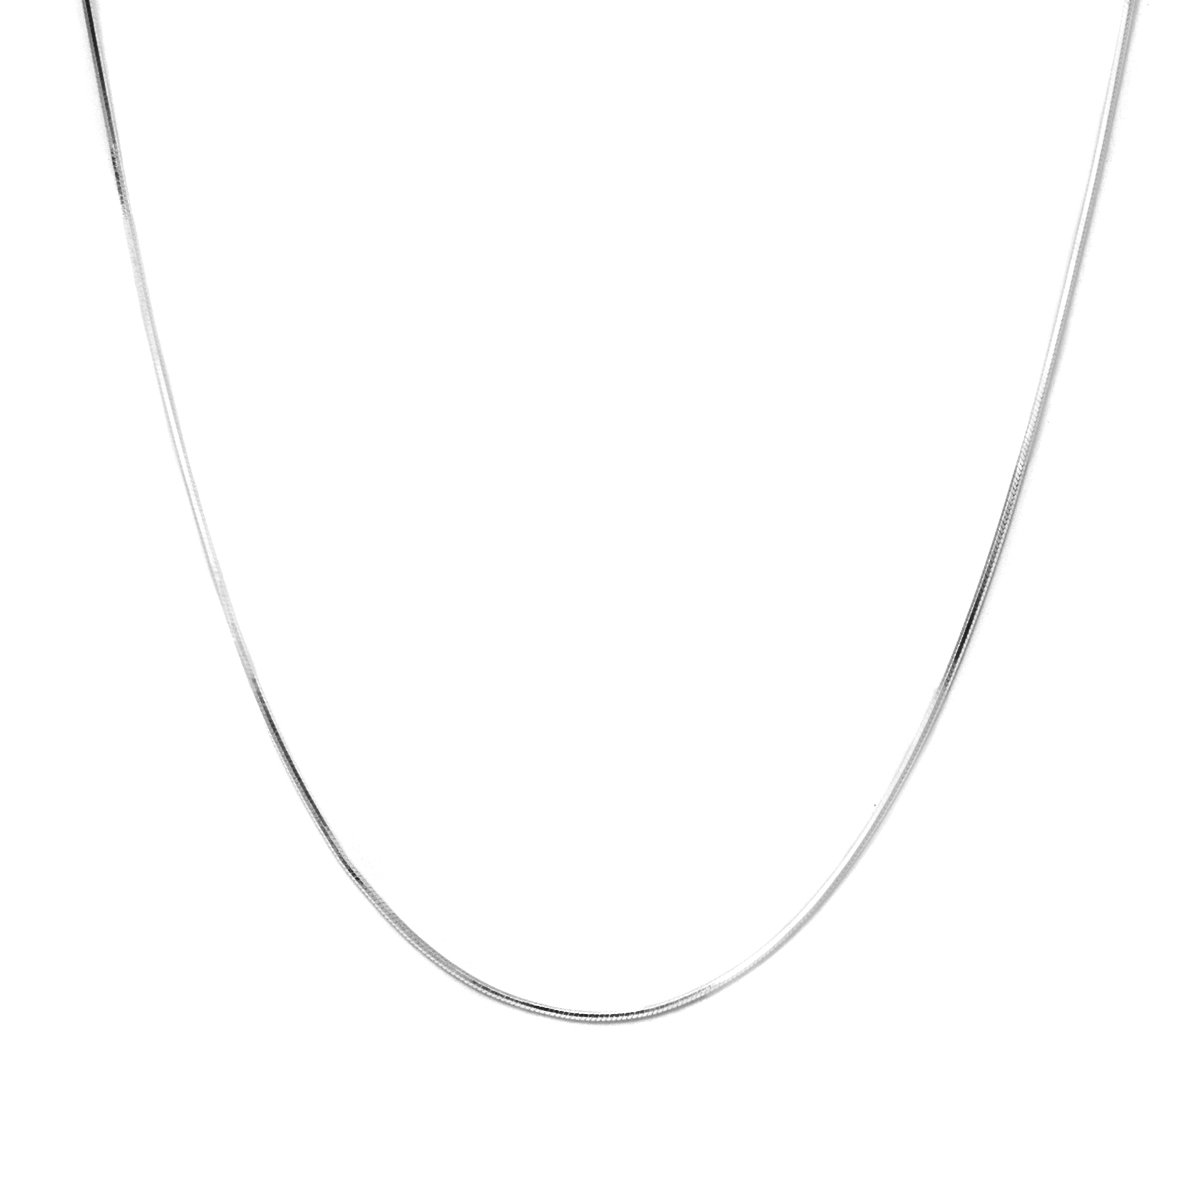 Pori Jewelers 925 Sterling Silver 1.5MM Magic 8 Sided Italian Snake Chain - for Women - Made in Italy (18)